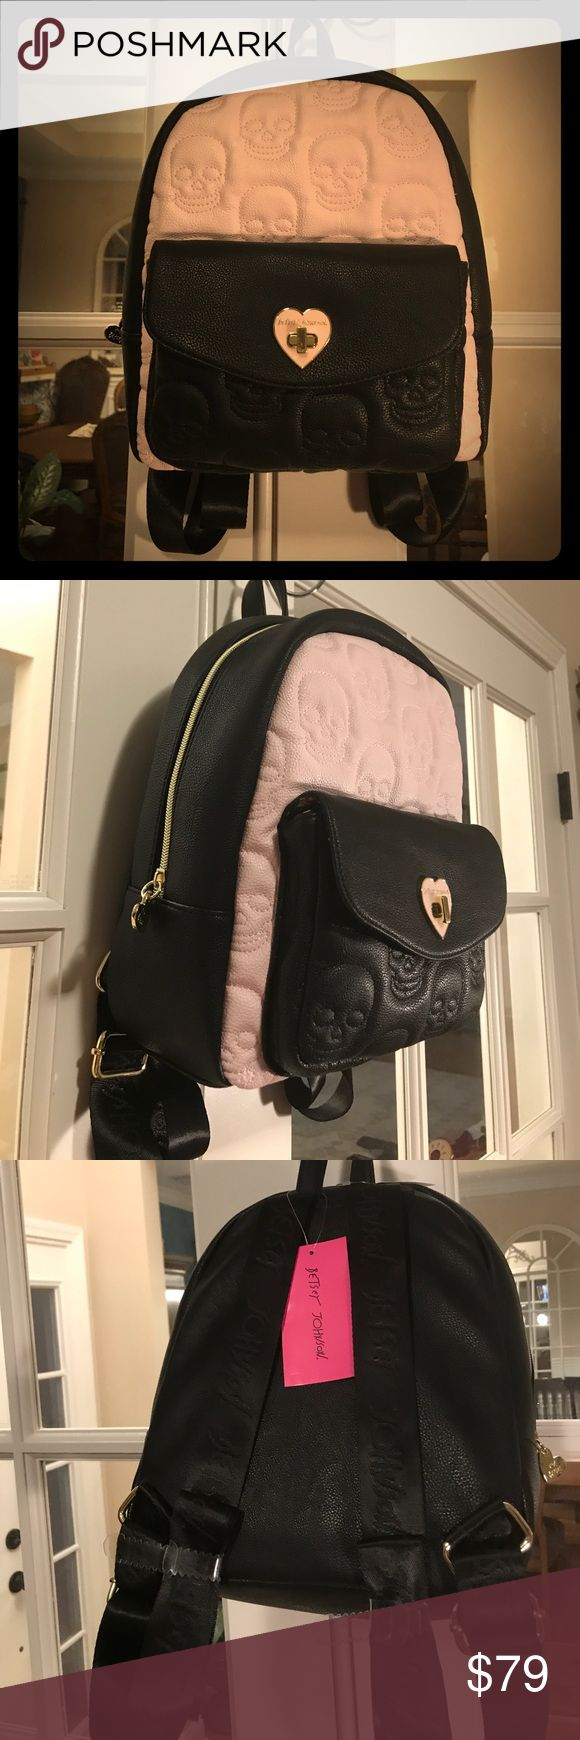 """🆕 Betsey Johnson's Medium Skull Backpack This Betsey Johnson's Medium Skull Backpack is black and light pink (blush colored.)   It is fully lined with Betsey Johnson fabric and has one zippered pocket and two slip pockets.  Straps are adjustable and have Betsey Johnson written on them. There is one front fully lined pocket, too. 💞. Roughly 10""""L x 12""""H x 5""""W (not including the front pocket.).   💋 Every gal needs a Betsey!💋 Betsey Johnson Bags Backpacks"""